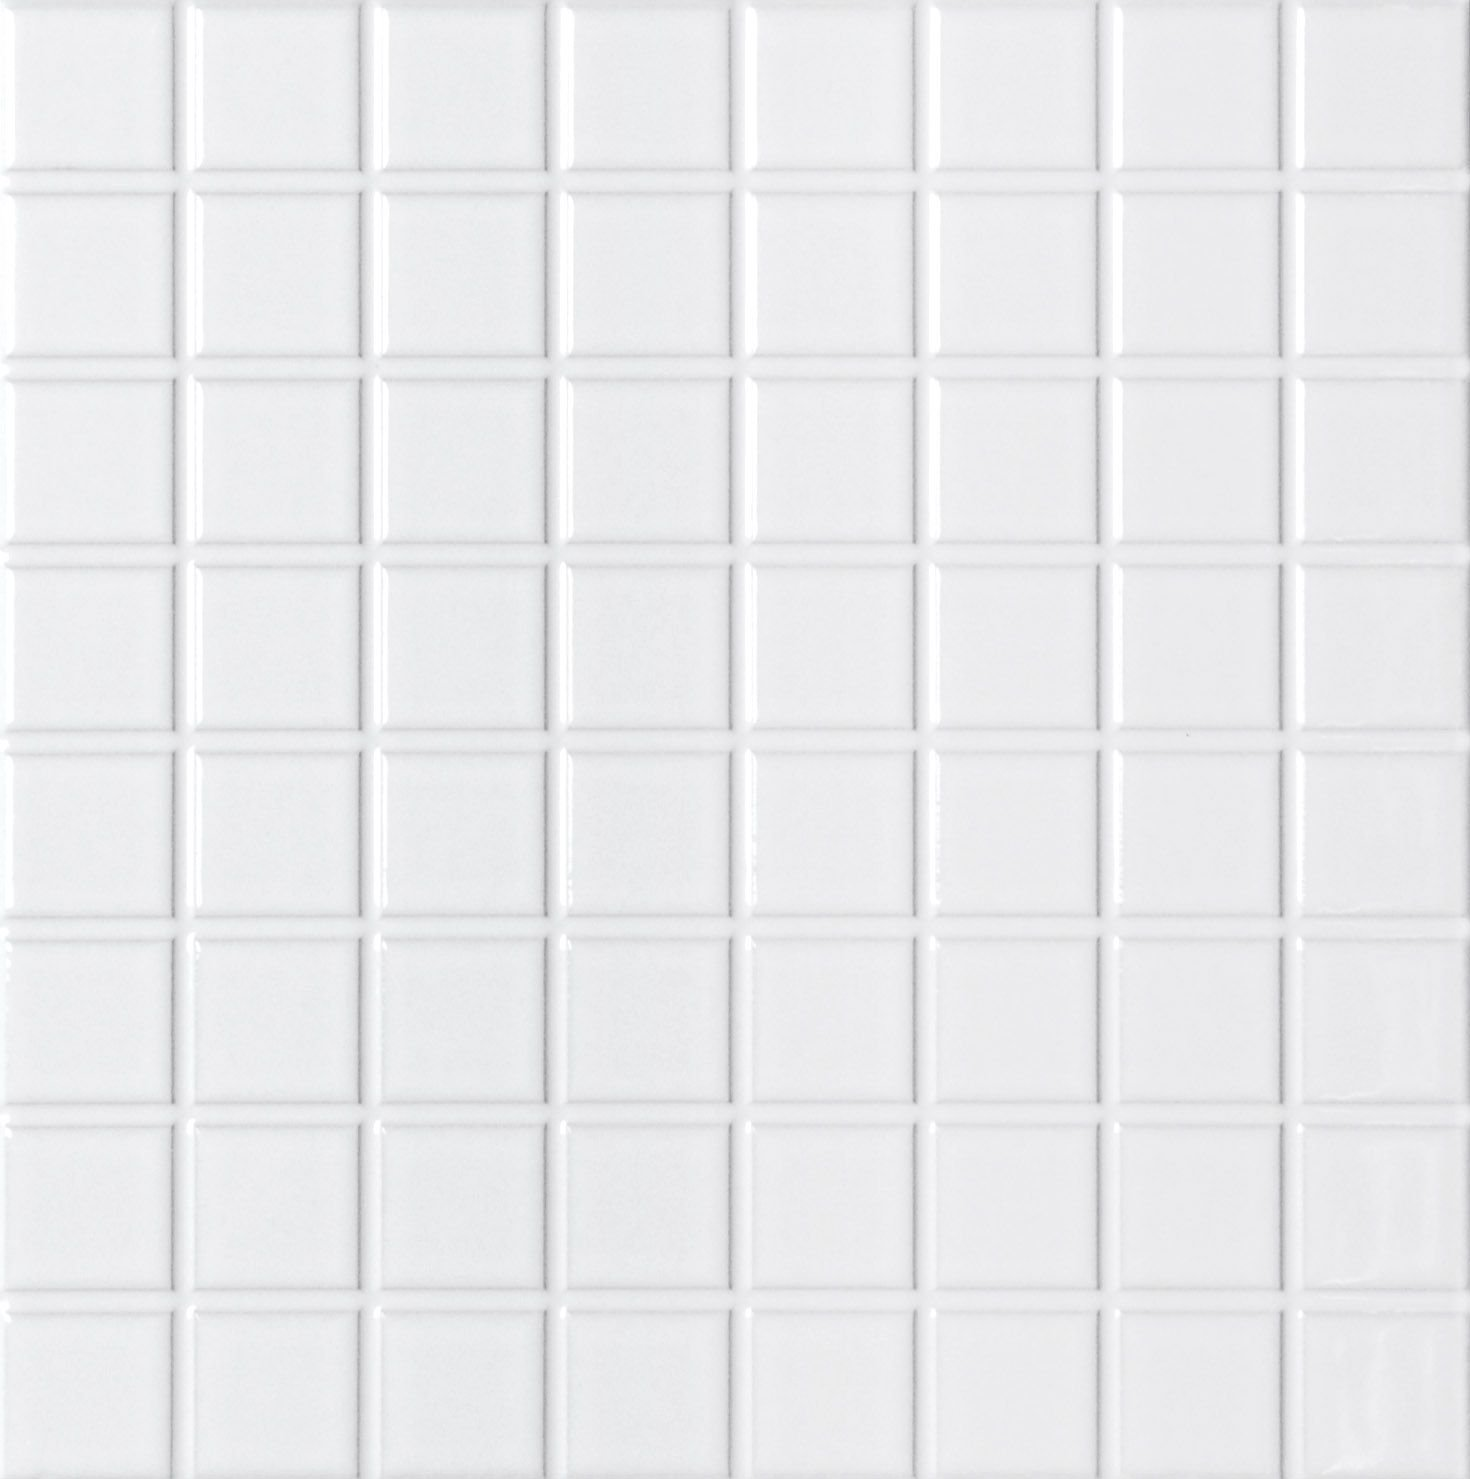 Carrelage design carrelage blanc 10x10 moderne design for Carrelage mural 10x10